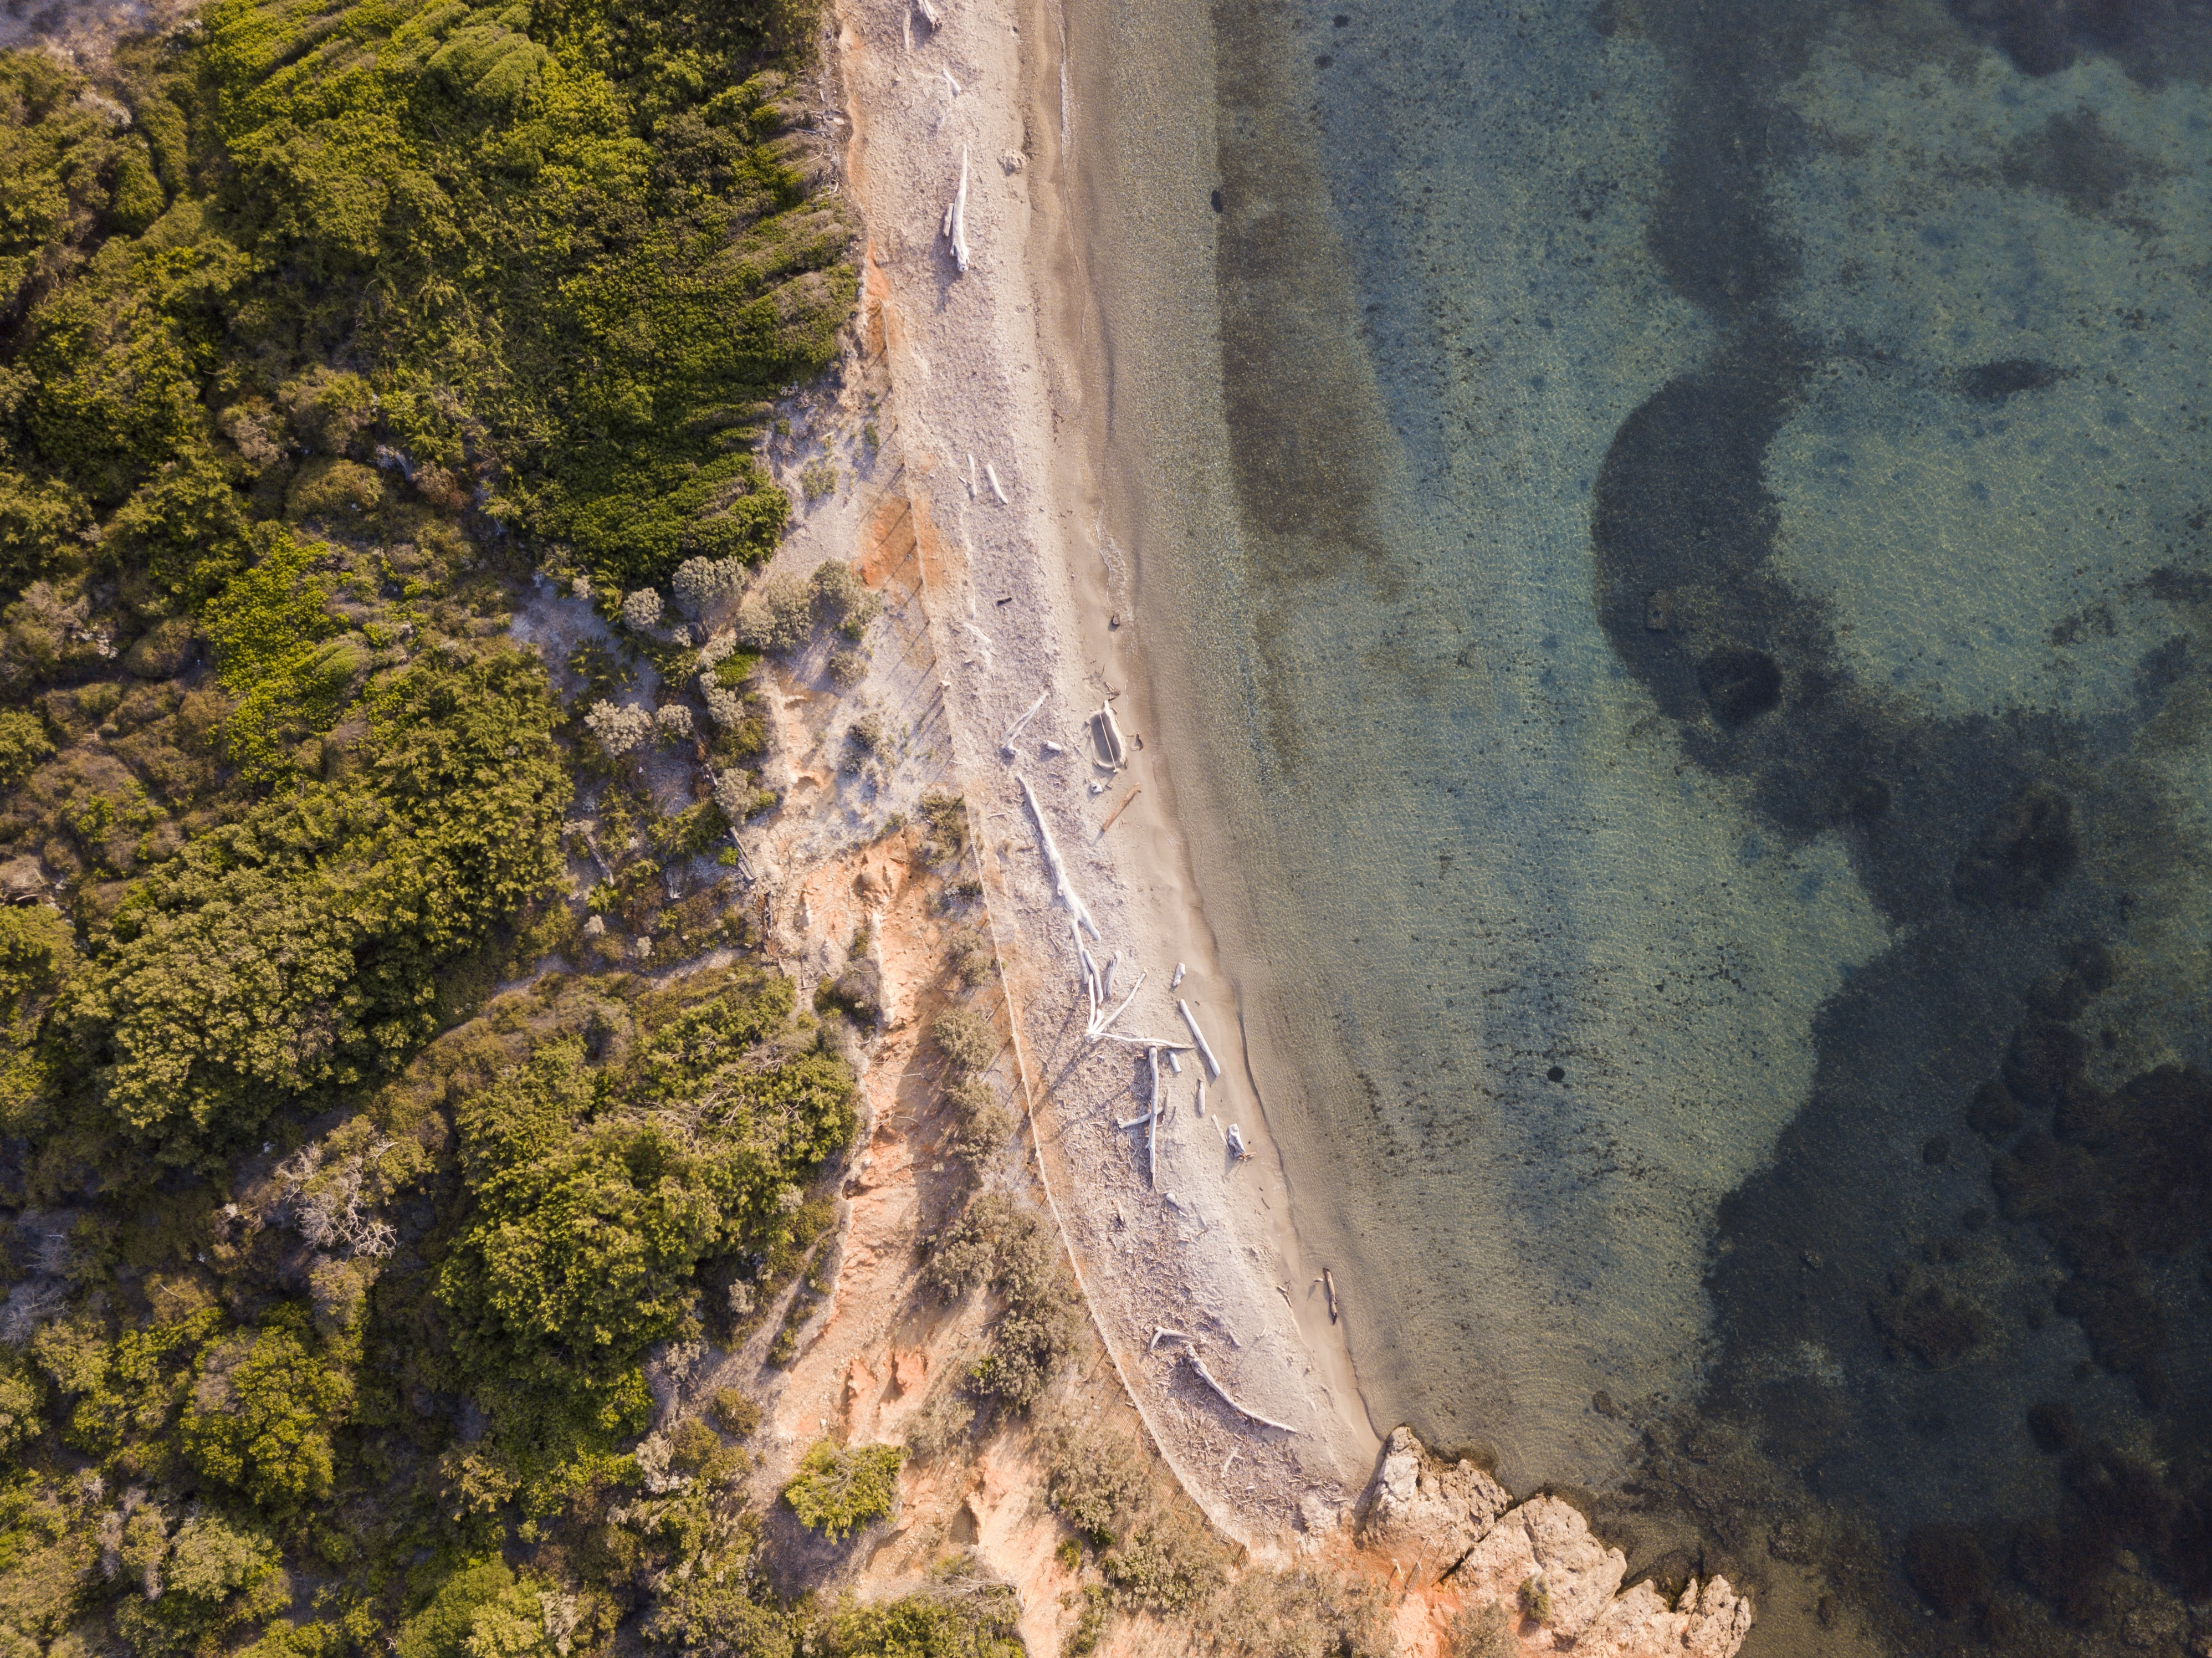 Drone view of the sand coast with old trees by the forest at Hyères, Provence-Alpes-Côte d'Azur, France